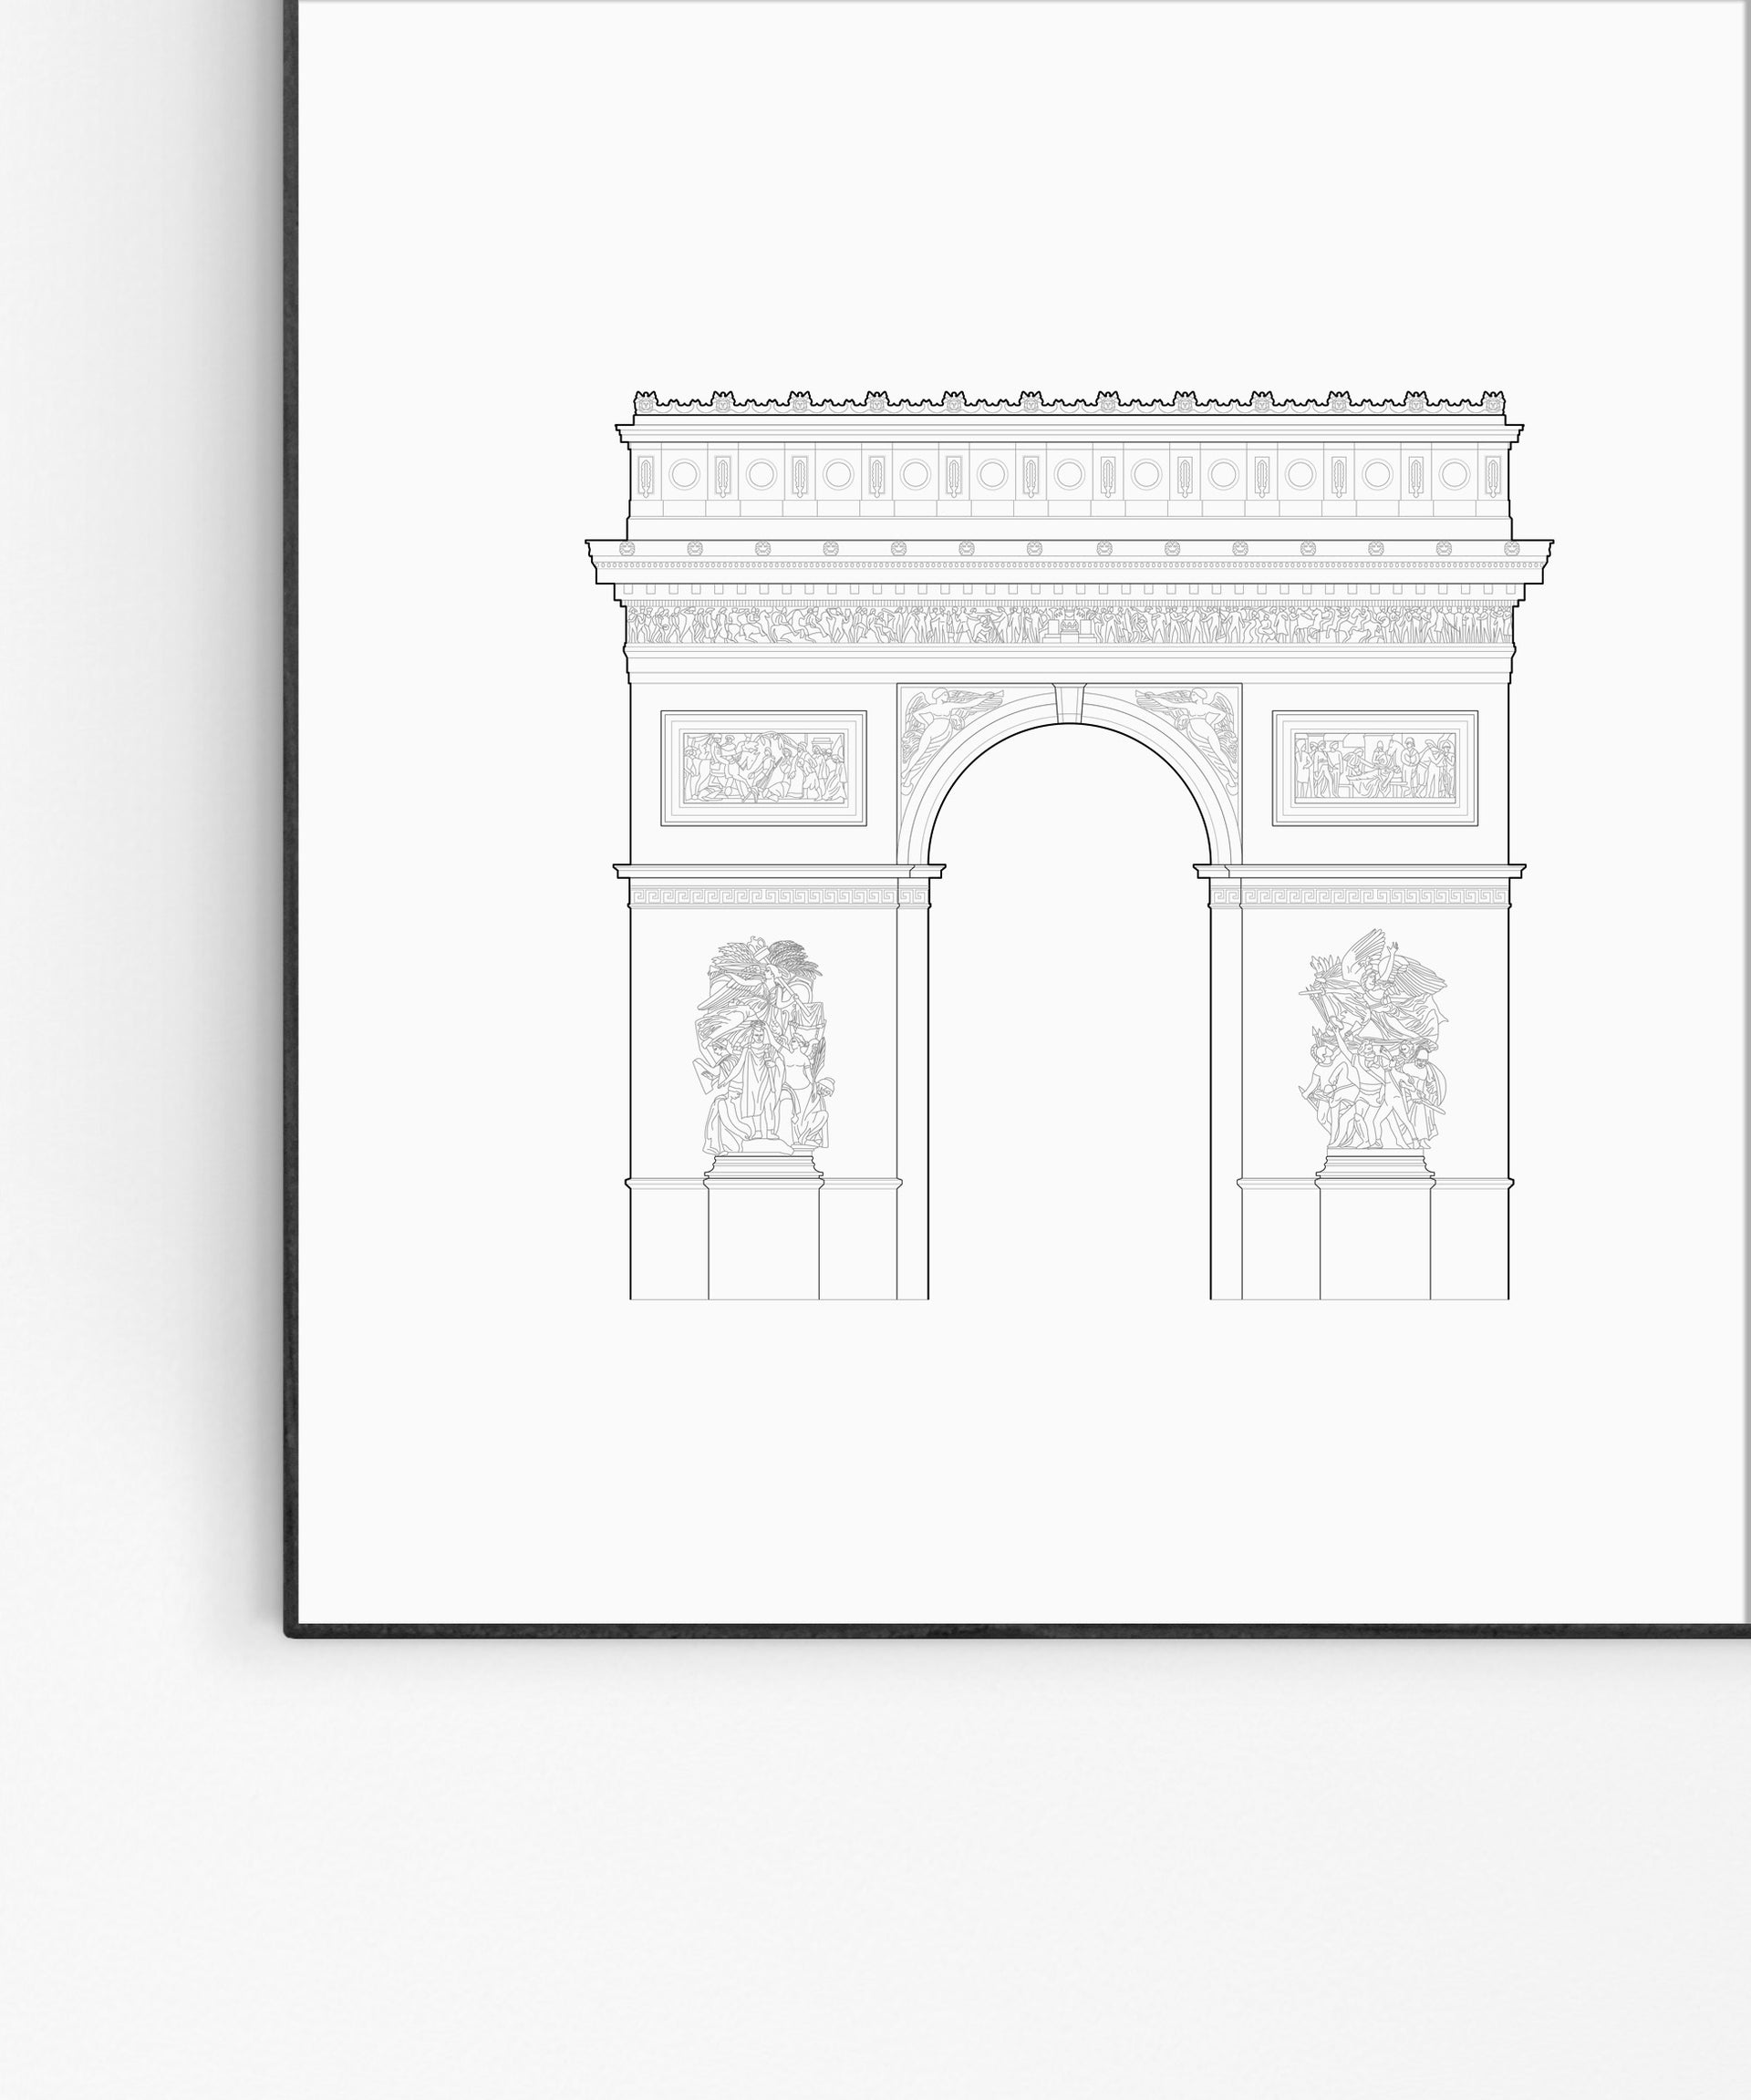 Arc de Triomphe elevation